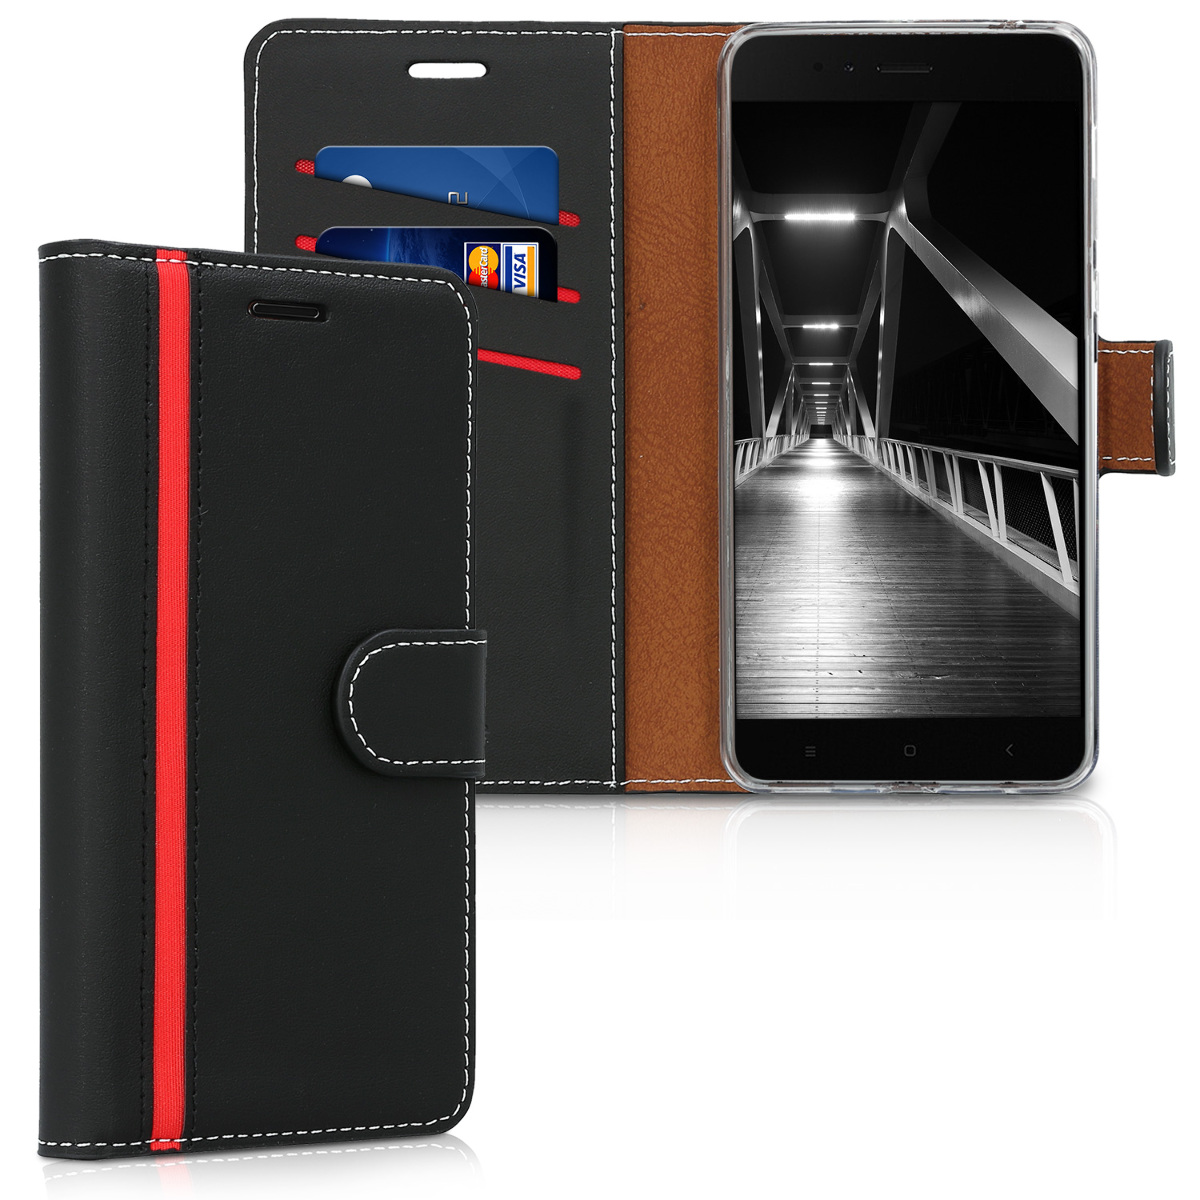 kwmobile Wallet Case for Xiaomi Mi 5X / Mi A1 - Protective PU Leather Flip Cover with Magnetic Closure, Card Slots and Kickstand